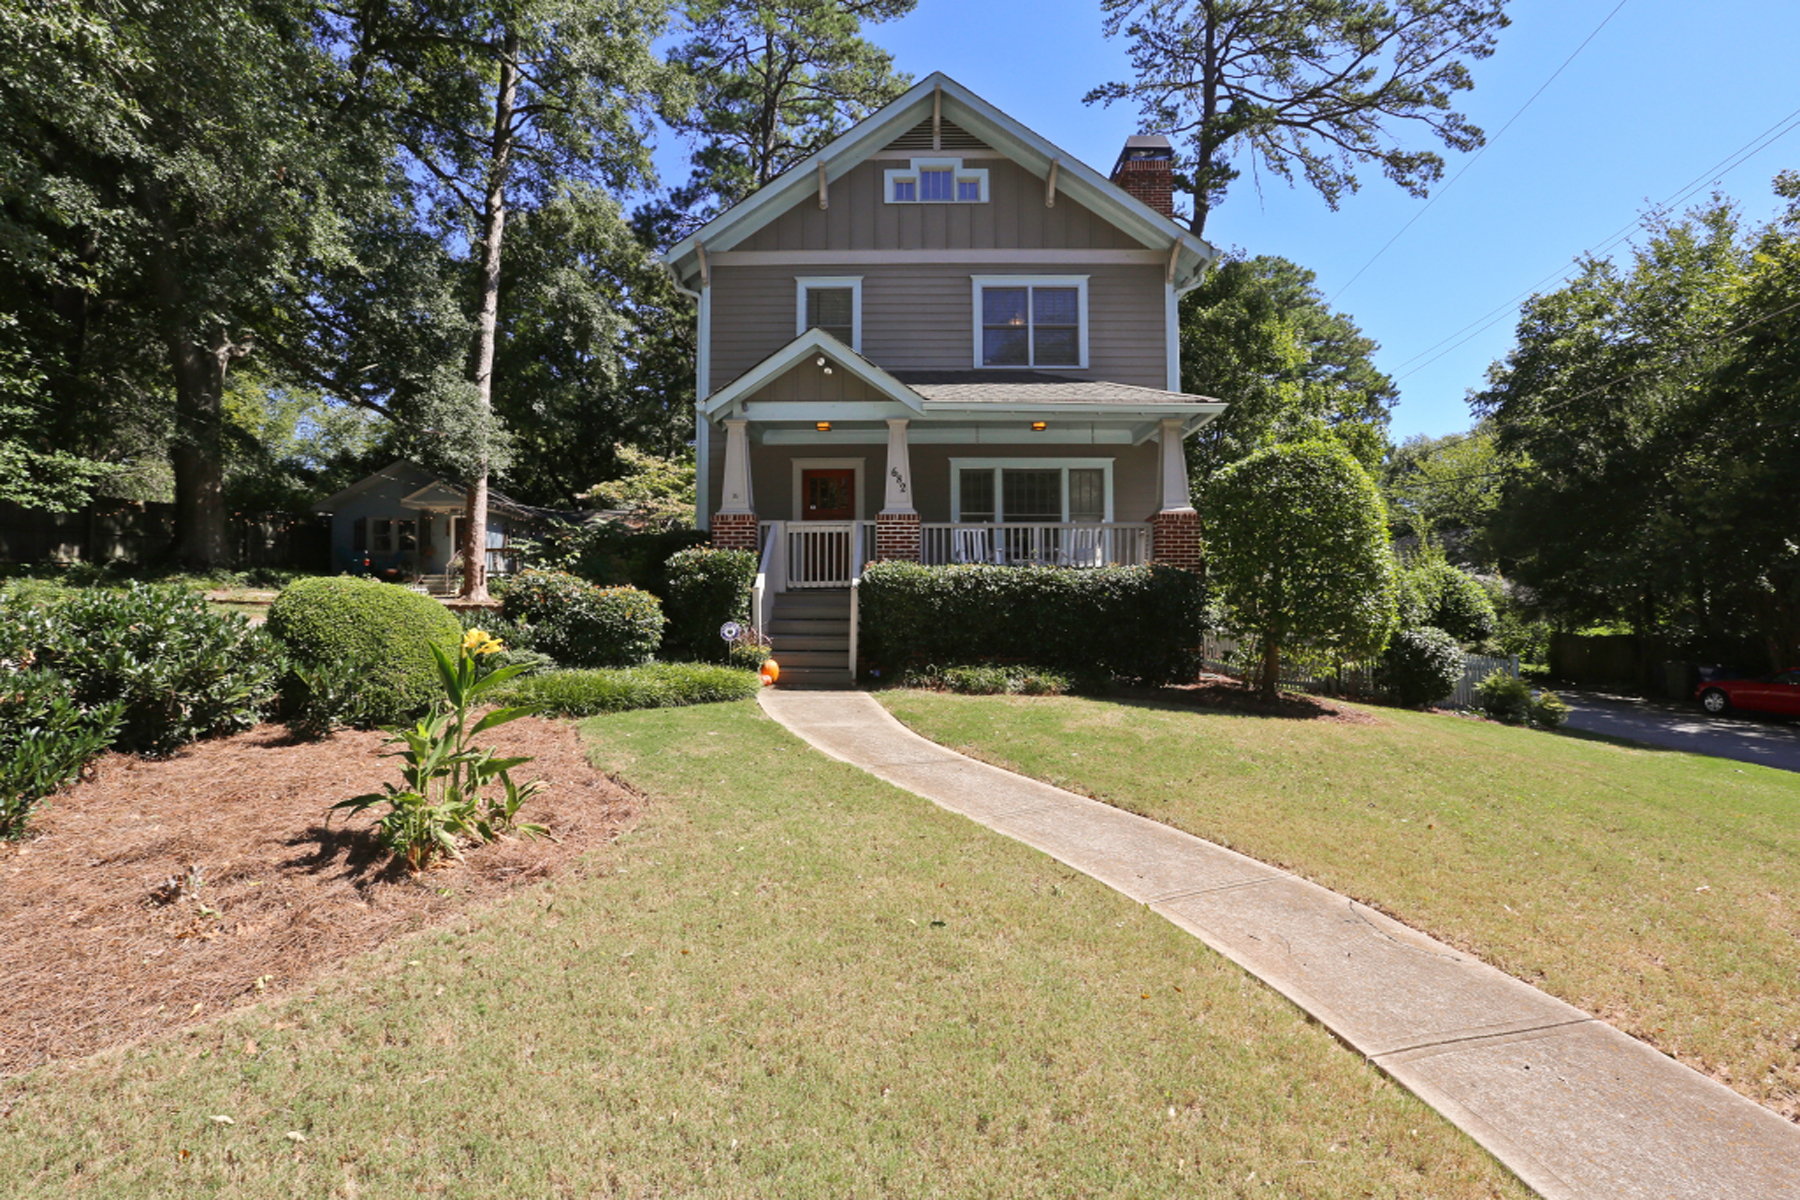 Single Family Home for Sale at Ormewood Park Craftsman 682 Vernon Avenue SE Atlanta, Georgia, 30316 United States